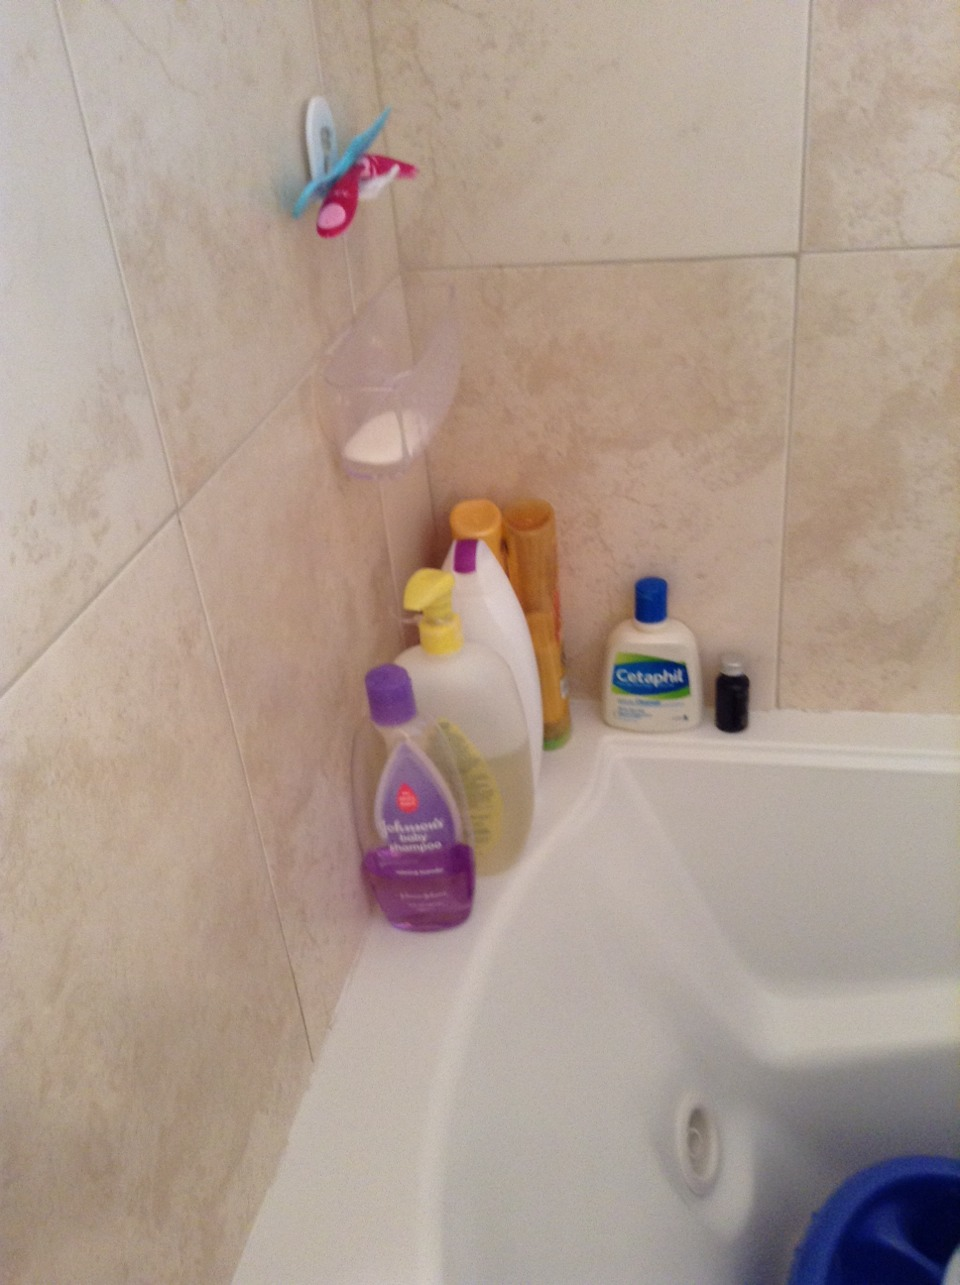 This is inside of my shower. It's really just the average way to store shower supplies, but it works really well for my size shower.